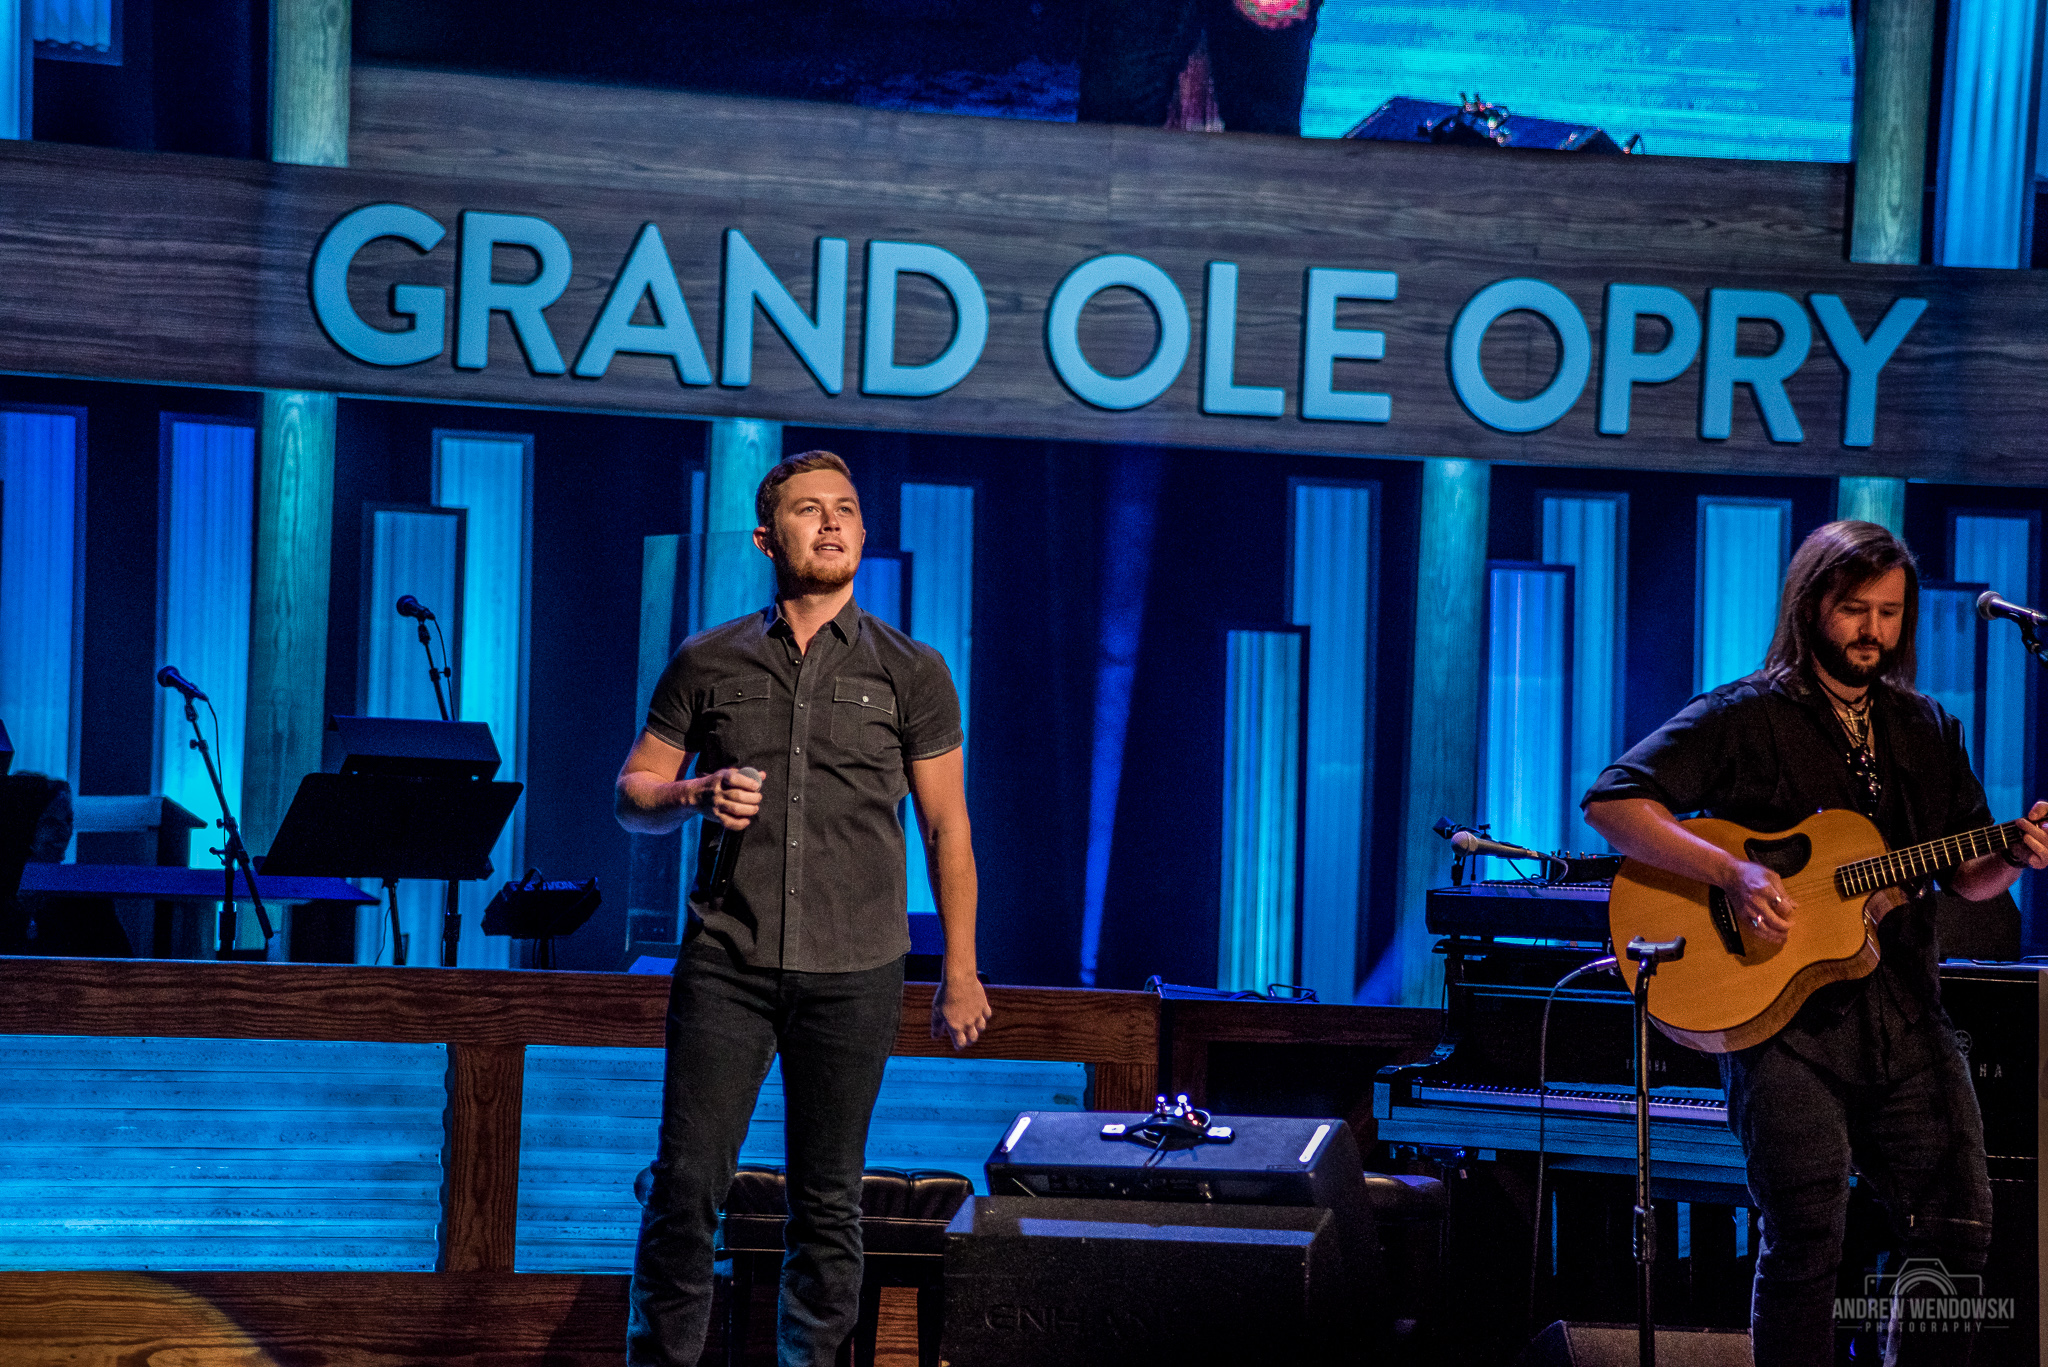 Grand Ole Opry Tour Reviews